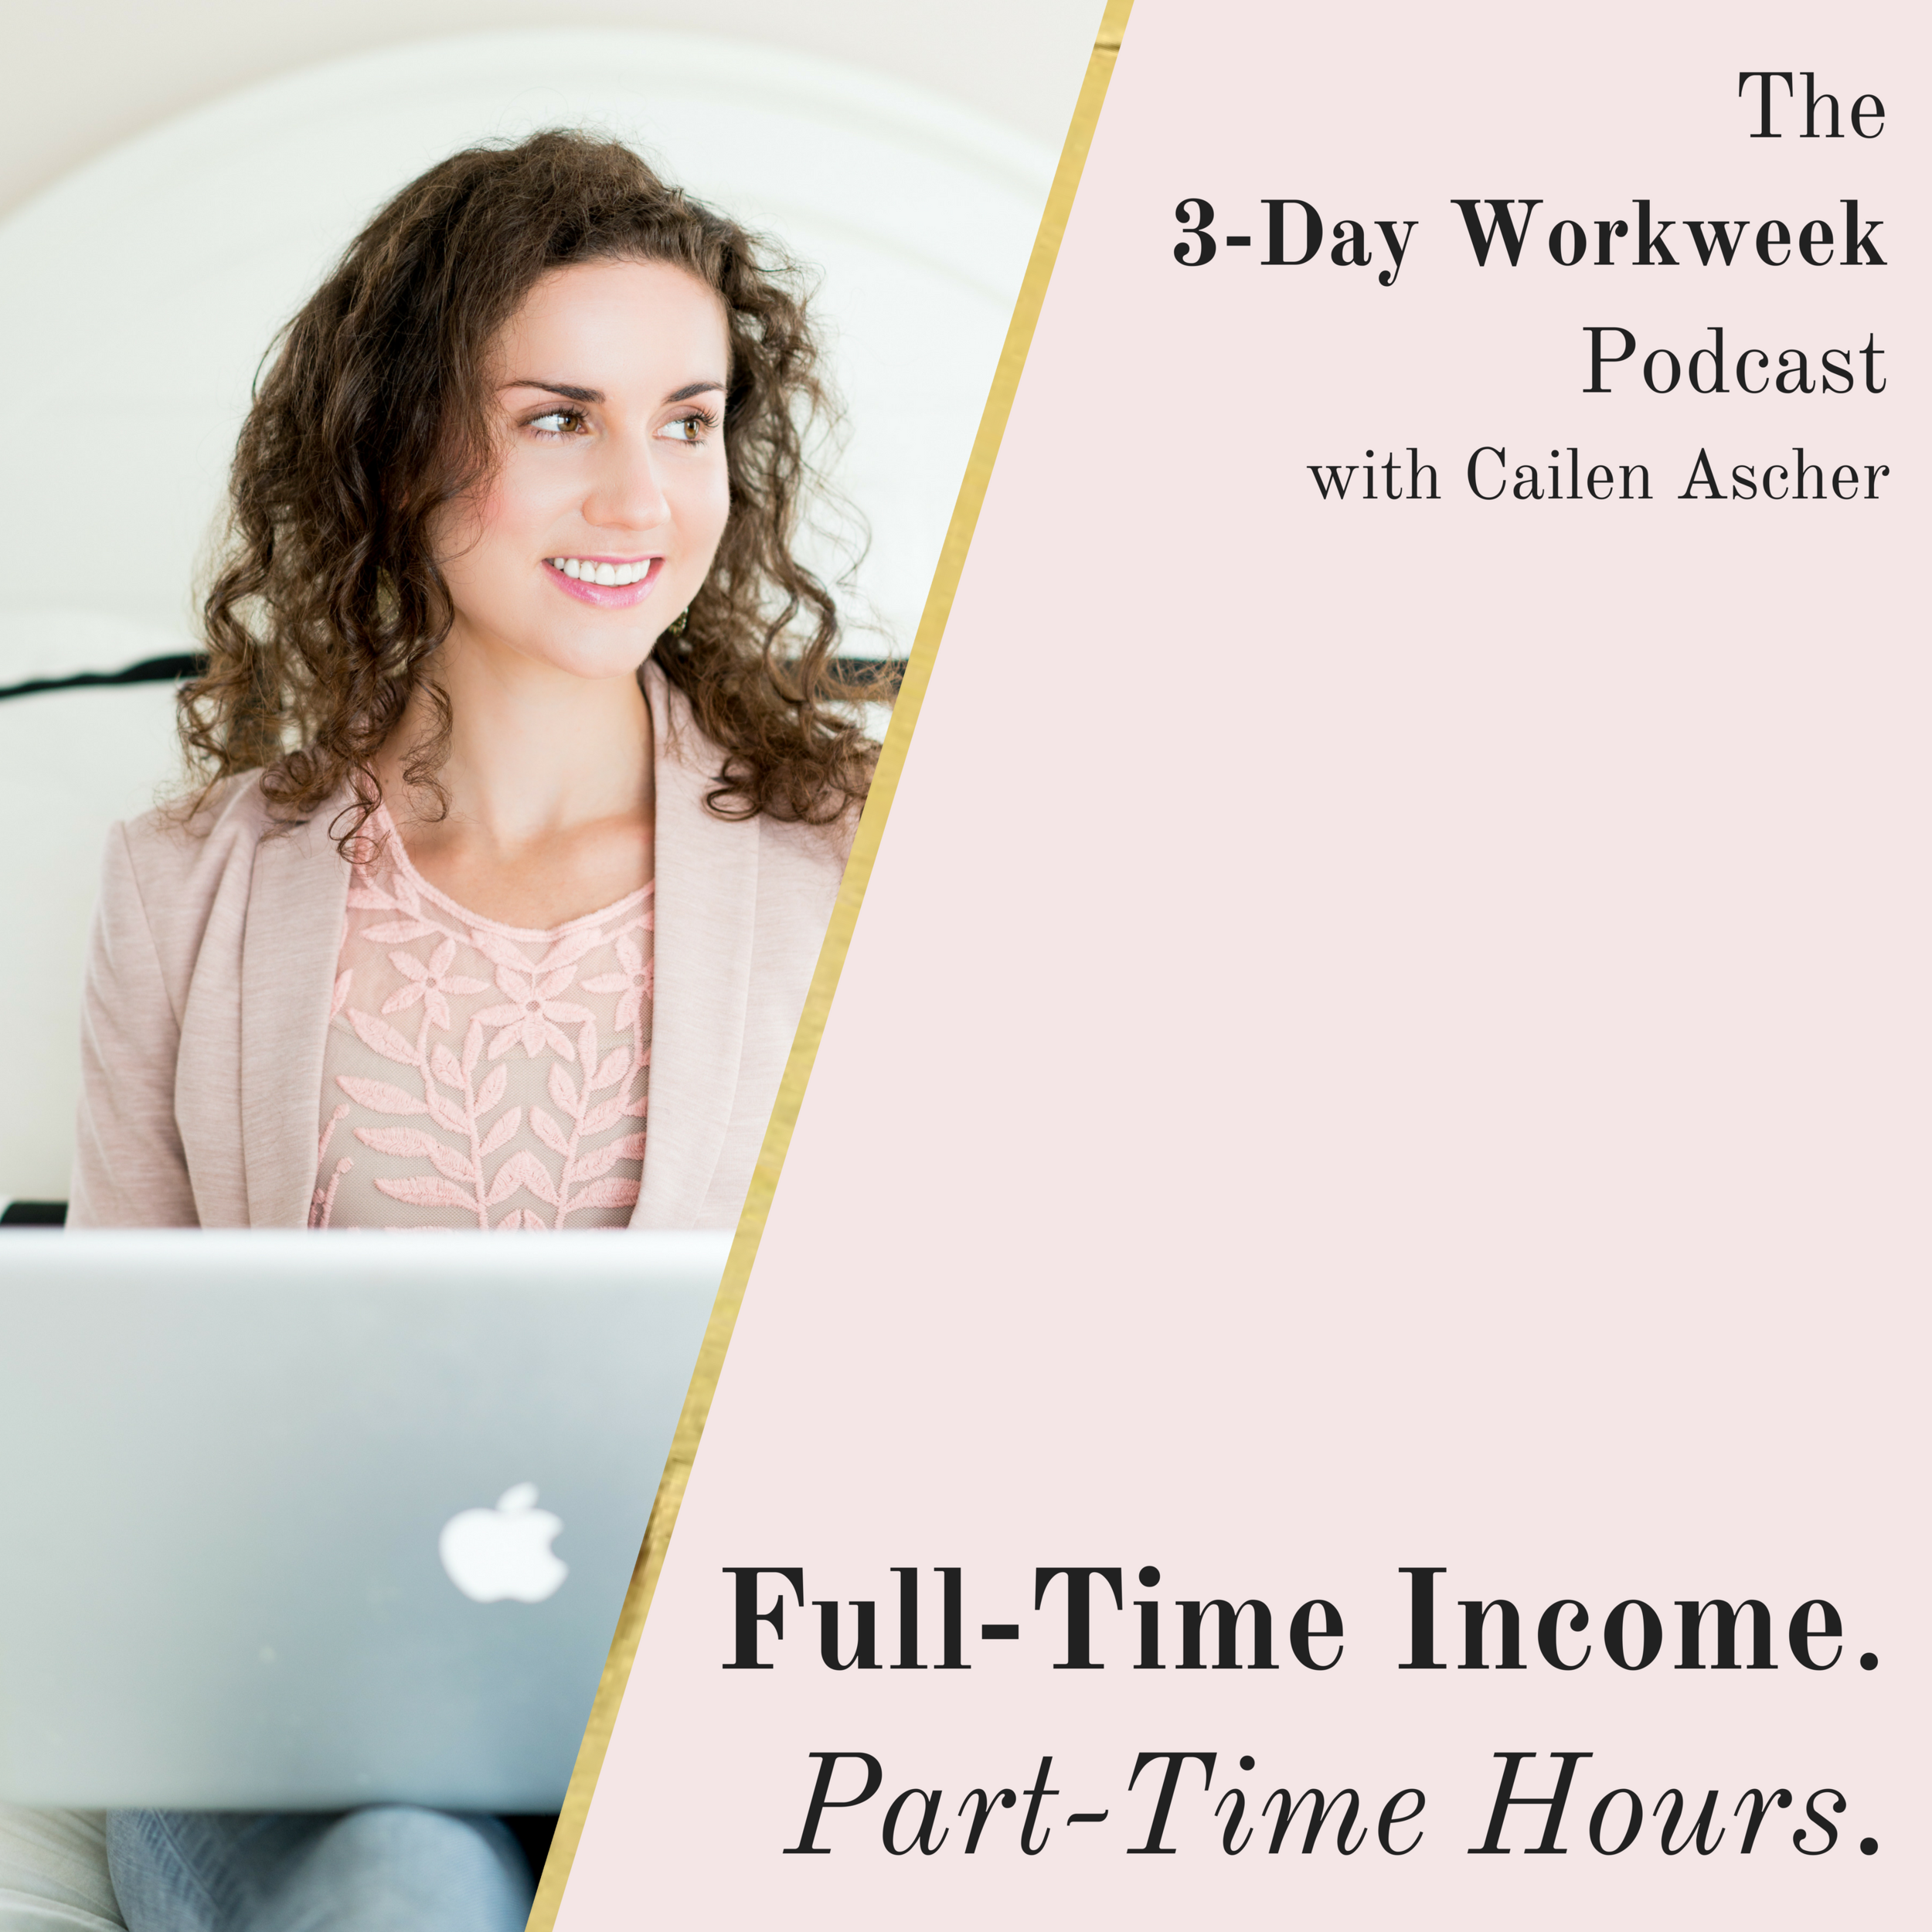 The 3-Day Workweek Podcast with Cailen Ascher - 2018-06-06 - Fulll-time Income. Part-time Hours - Square Promo Image.png